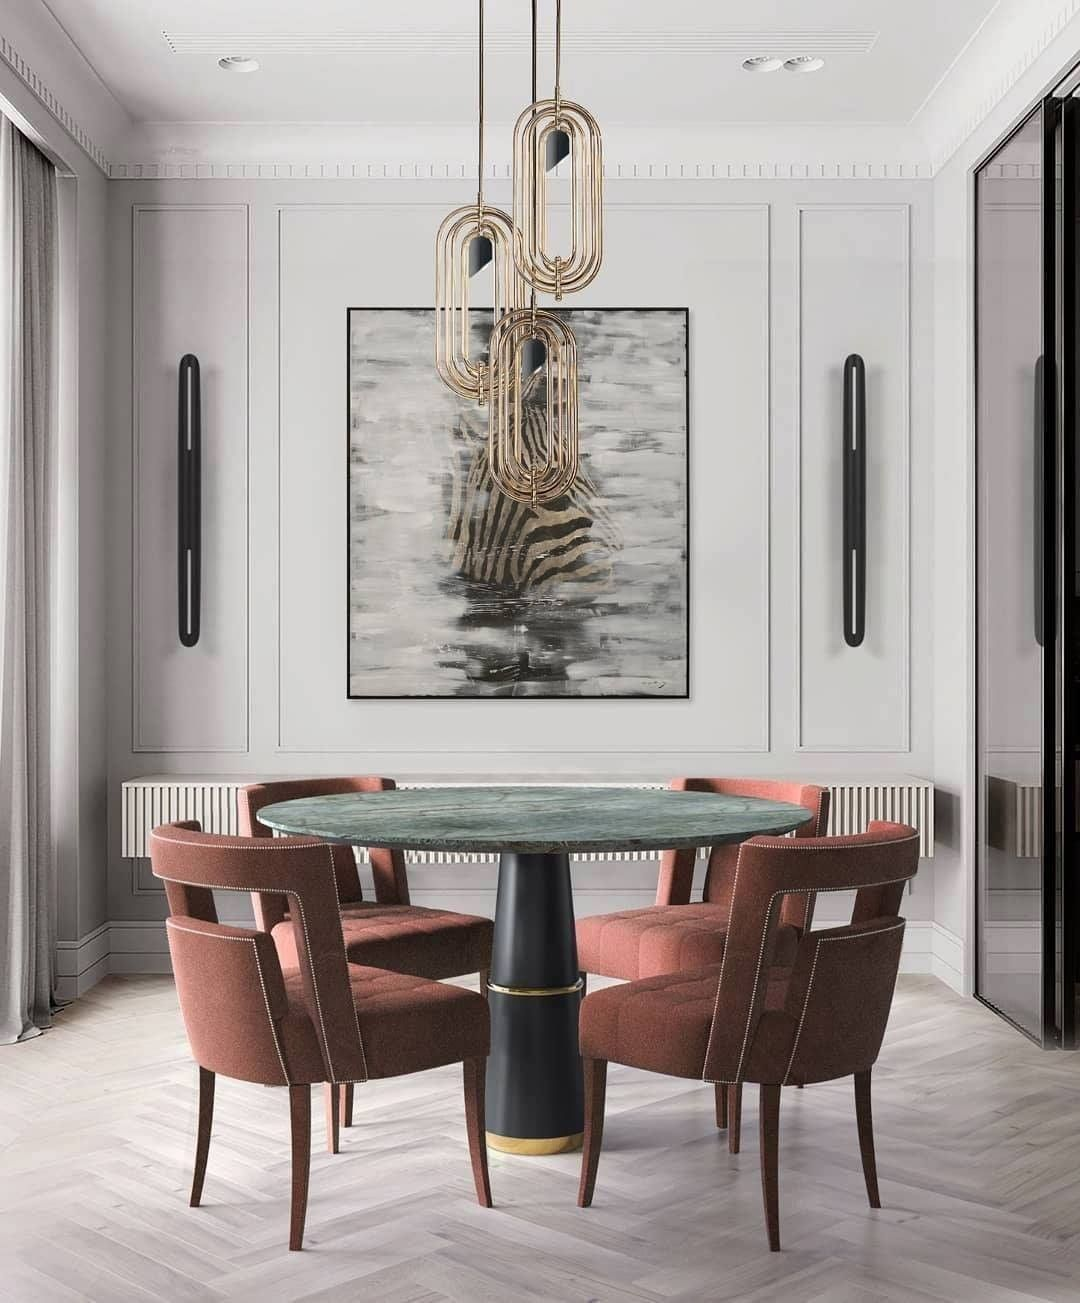 Interior Design Trends To Spice Up Your Dining Room In 2020 In